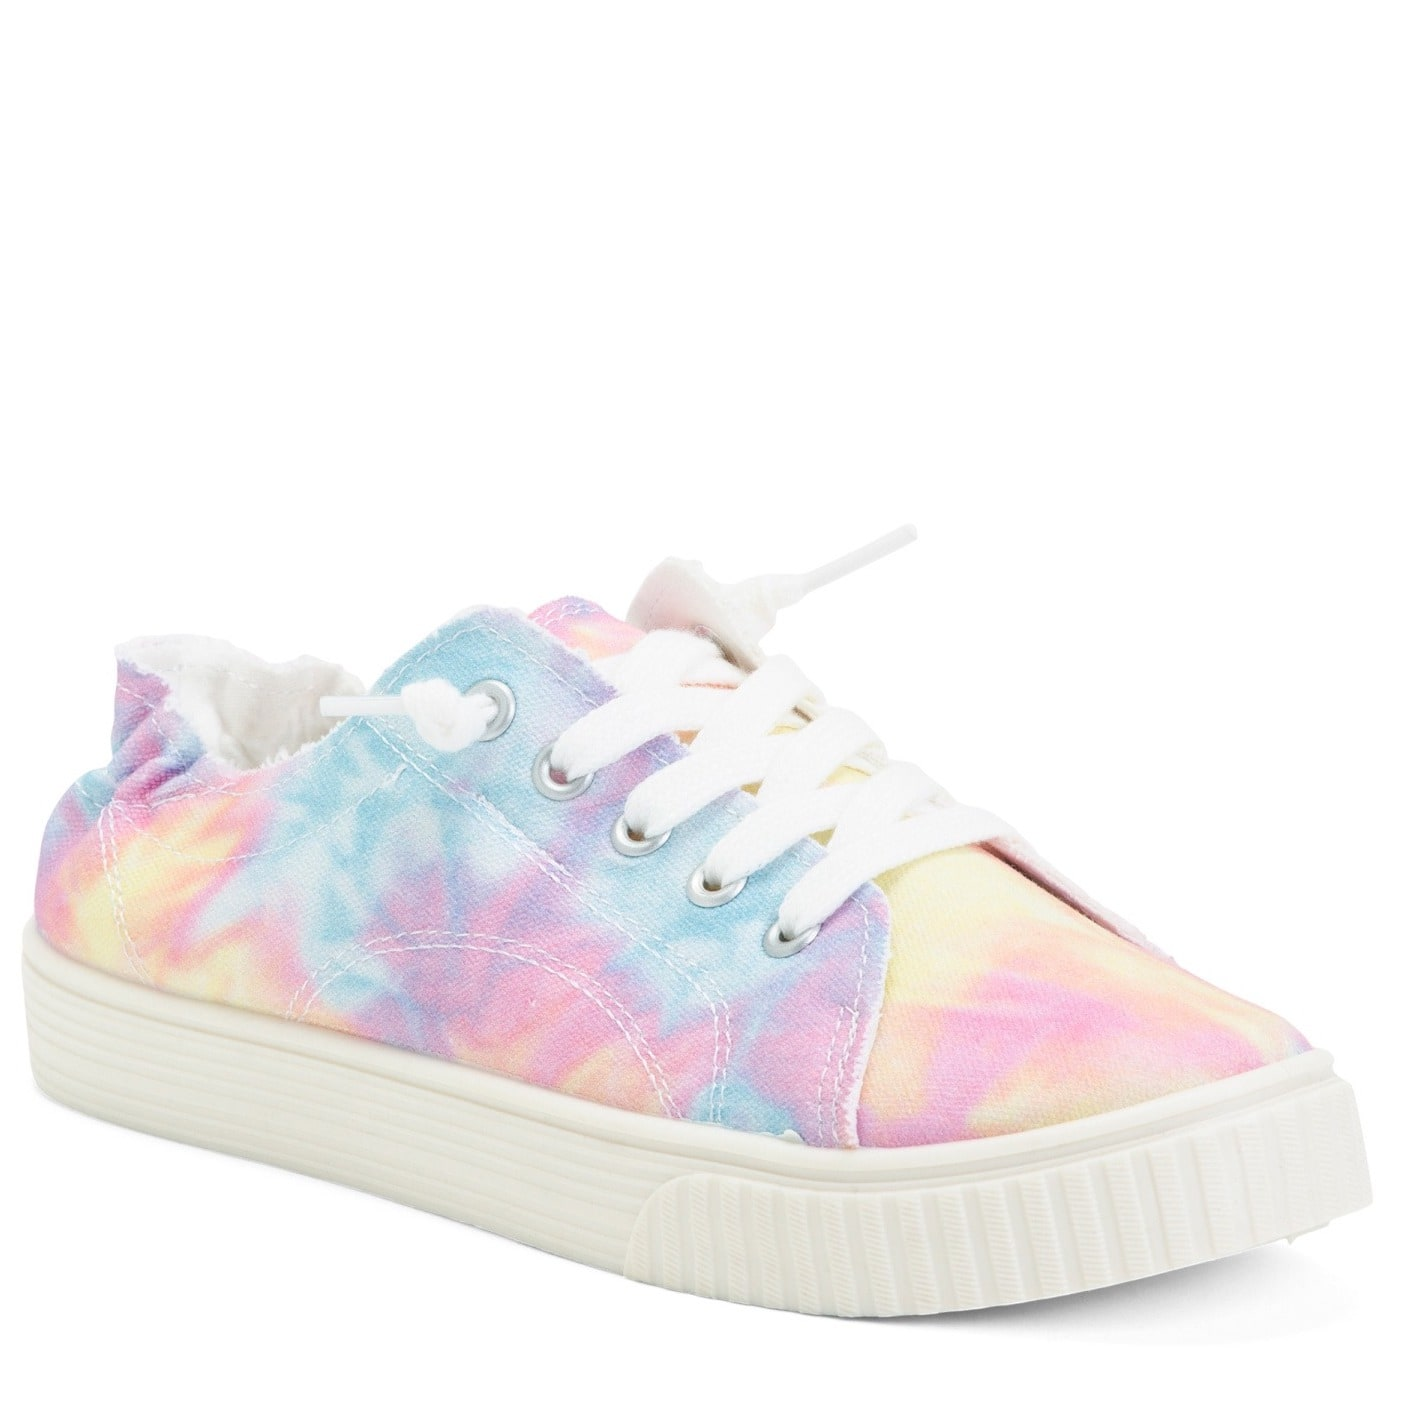 MADDEN GIRL Tie Dye Lace Up Easy Slip On Shoes $10 + FS